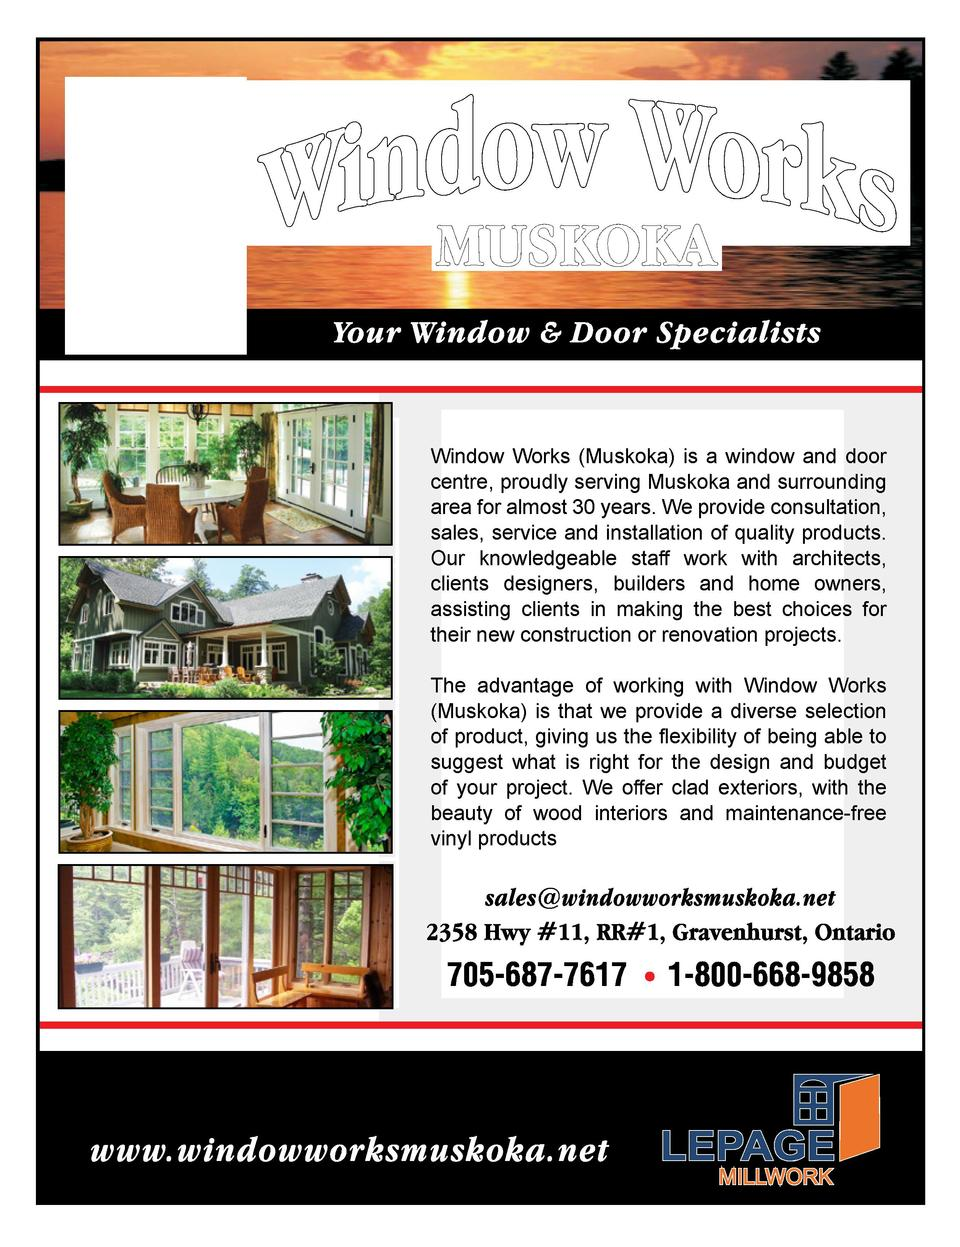 Window Works  Muskoka  is a window and door centre, proudly serving Muskoka and surrounding area for almost 30 years. We p...